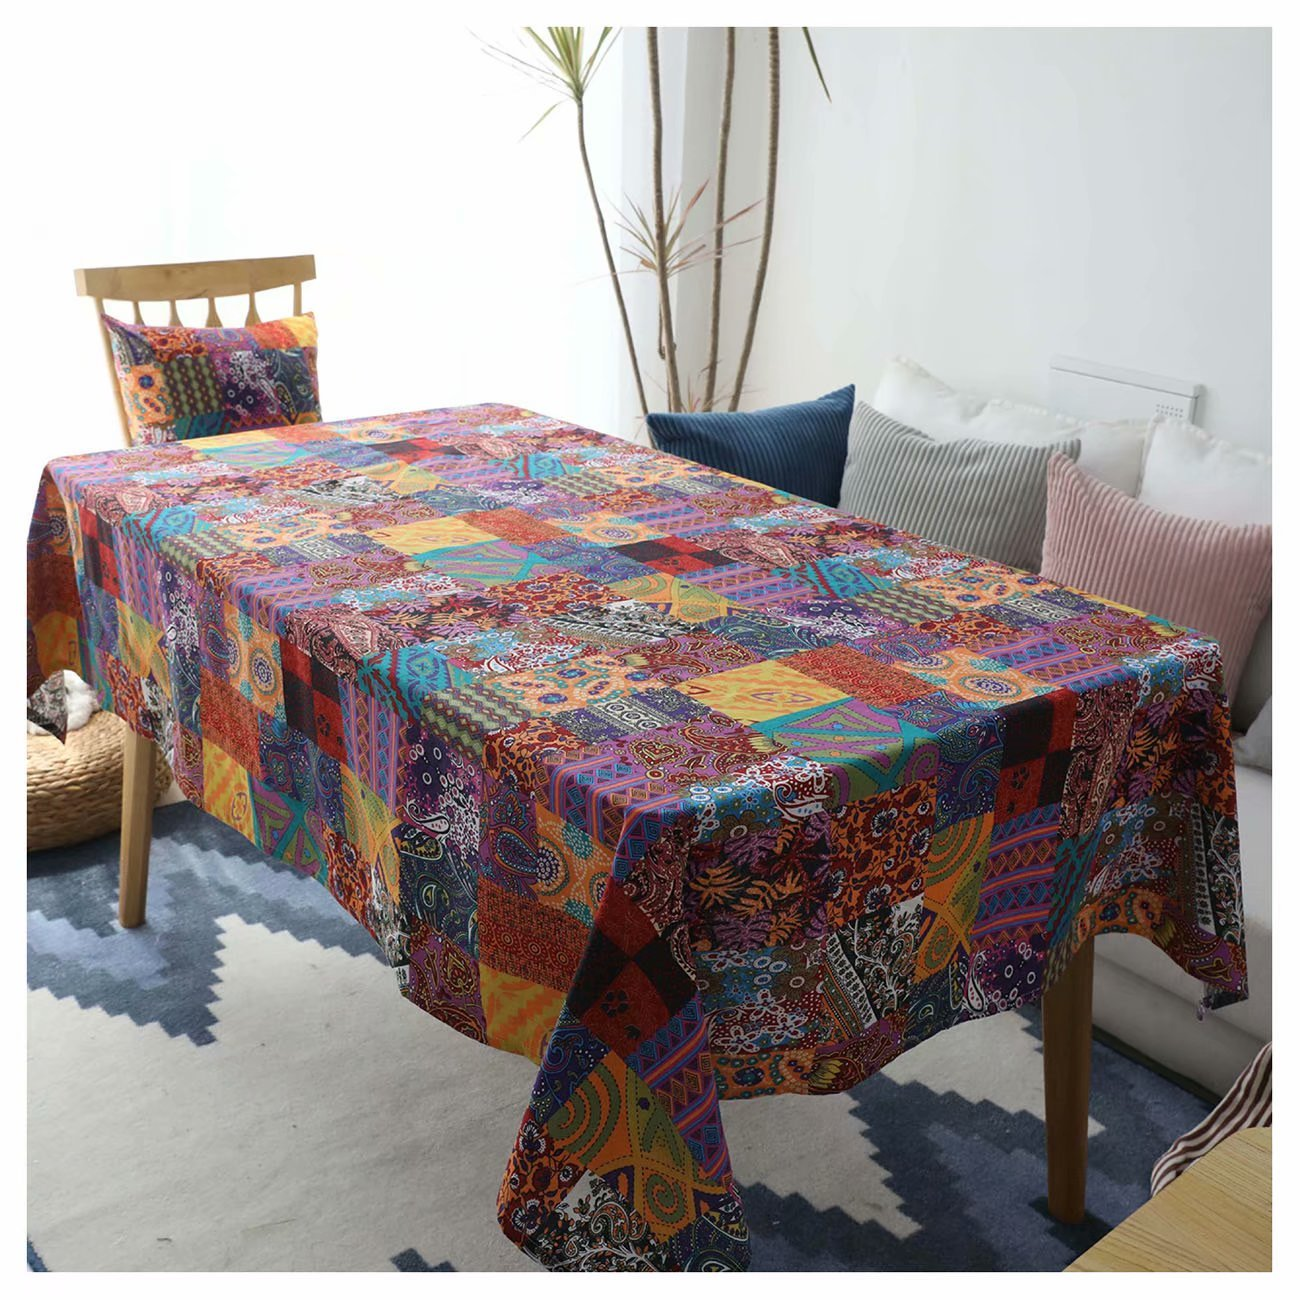 YOUTODRESS Bohemian Printed Tablecloth Multi Colored Rectangular Abstract Waterproof Table Cover